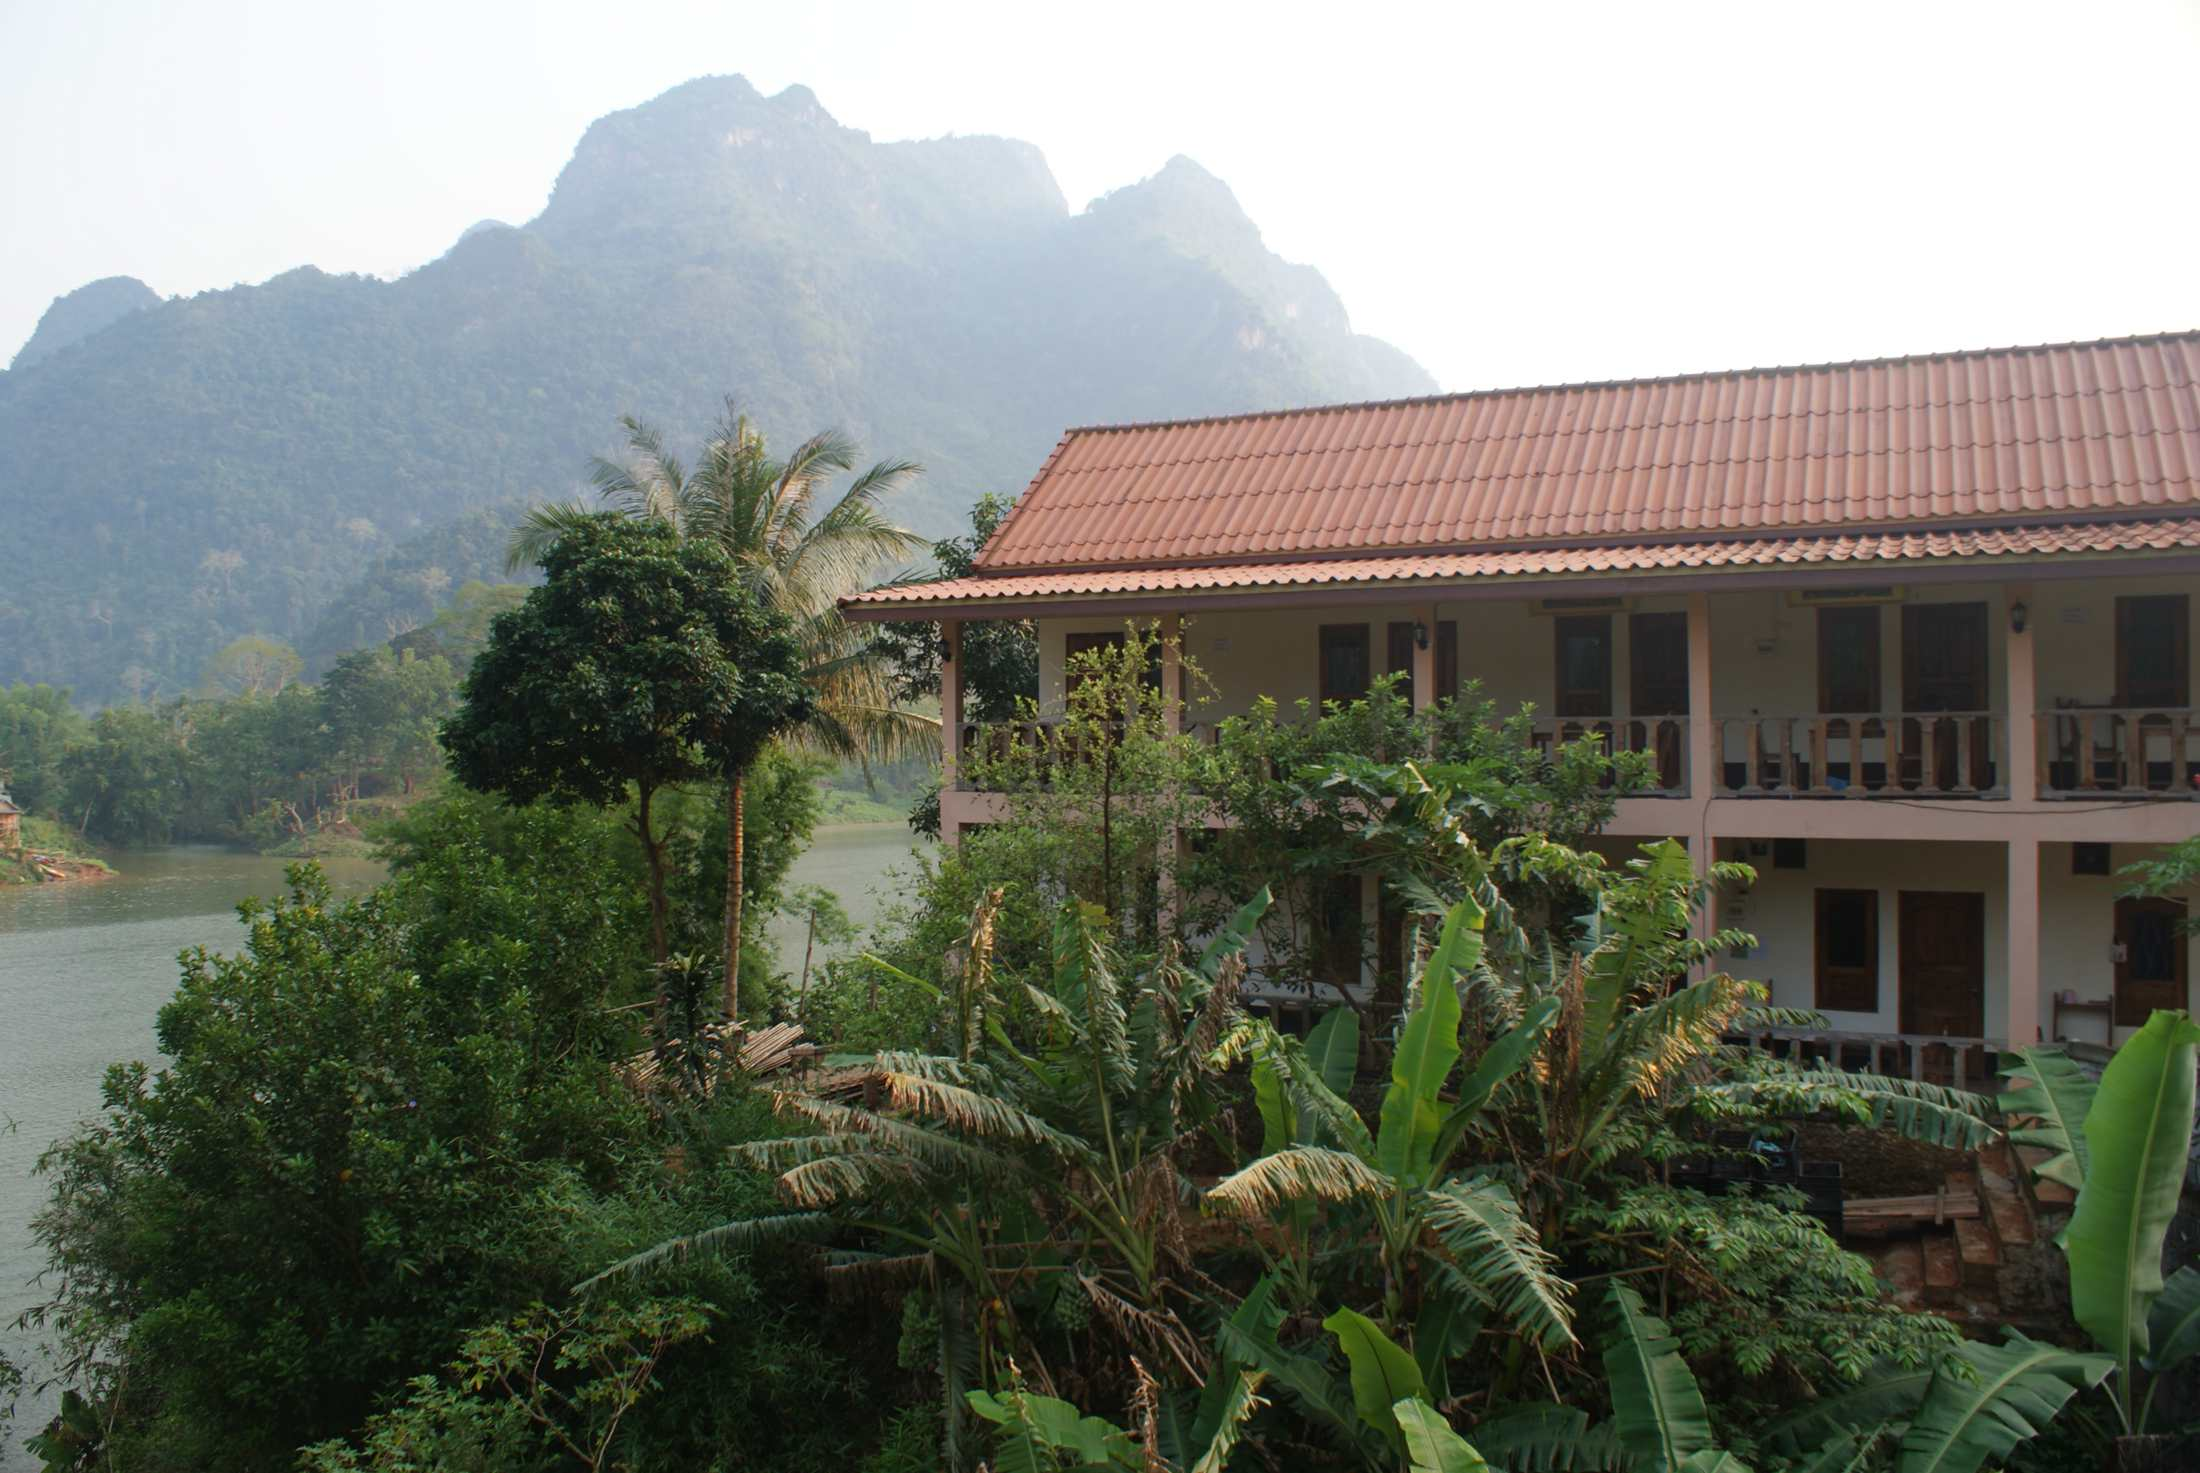 Our guesthouse in Nong Khiaw